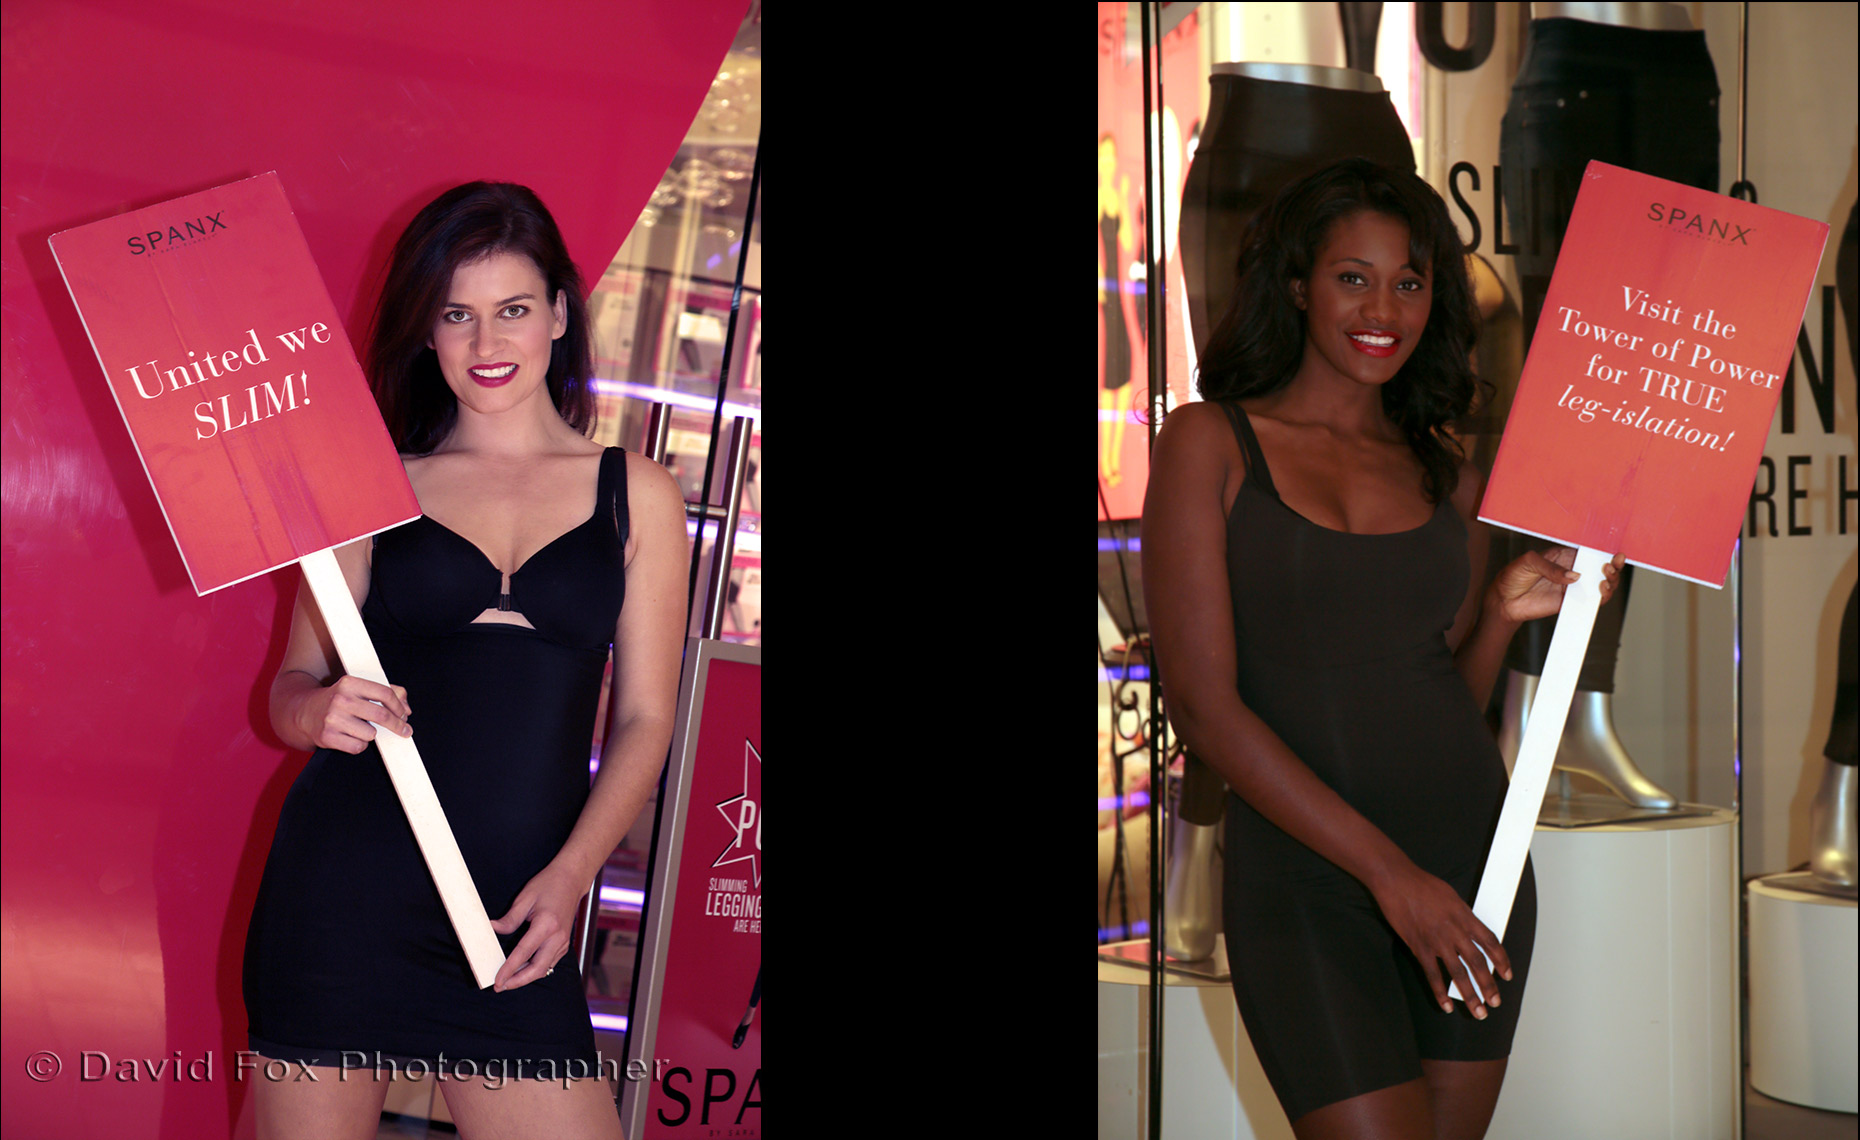 Spanx Models with Signs at Natick Store Grand Opening